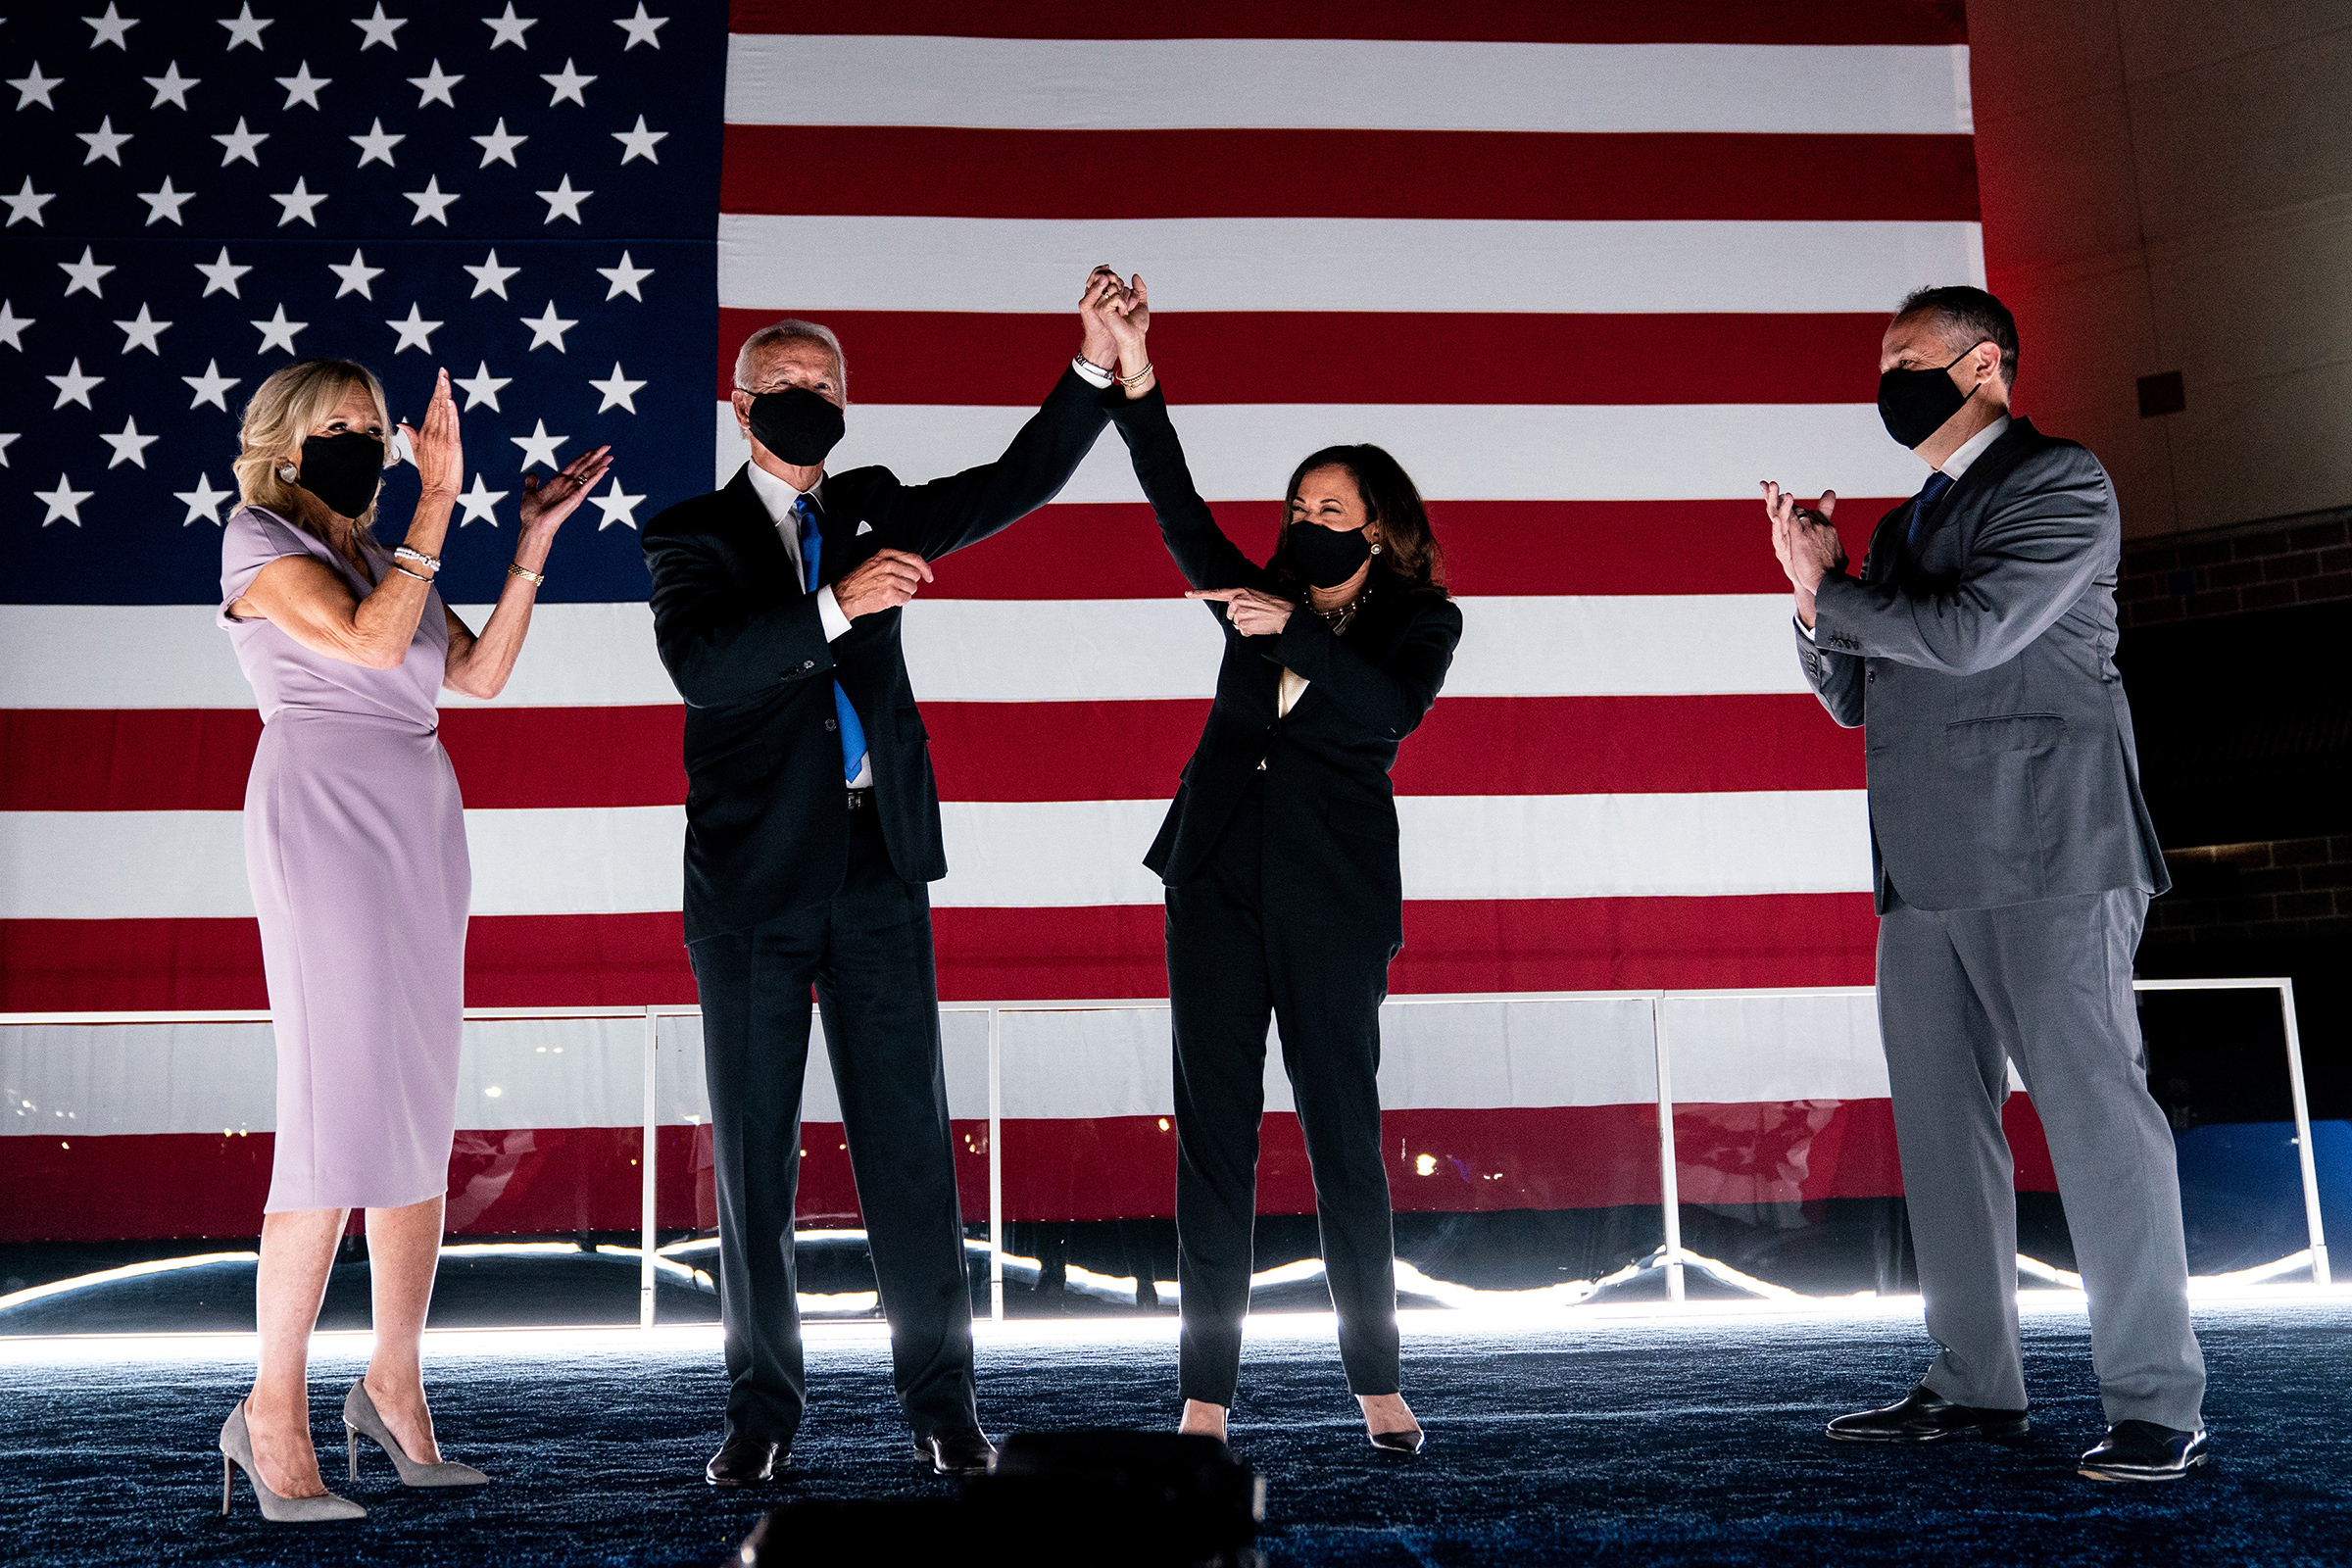 Former Vice President Joe Biden and Sen. Kamala Harris are applauded by their spouses, Jill Biden and Douglas Emhoff, shortly after Biden accepted his party's presidential nomination during the Democratic National Convention in Wilmington, Del., on Aug. 20.